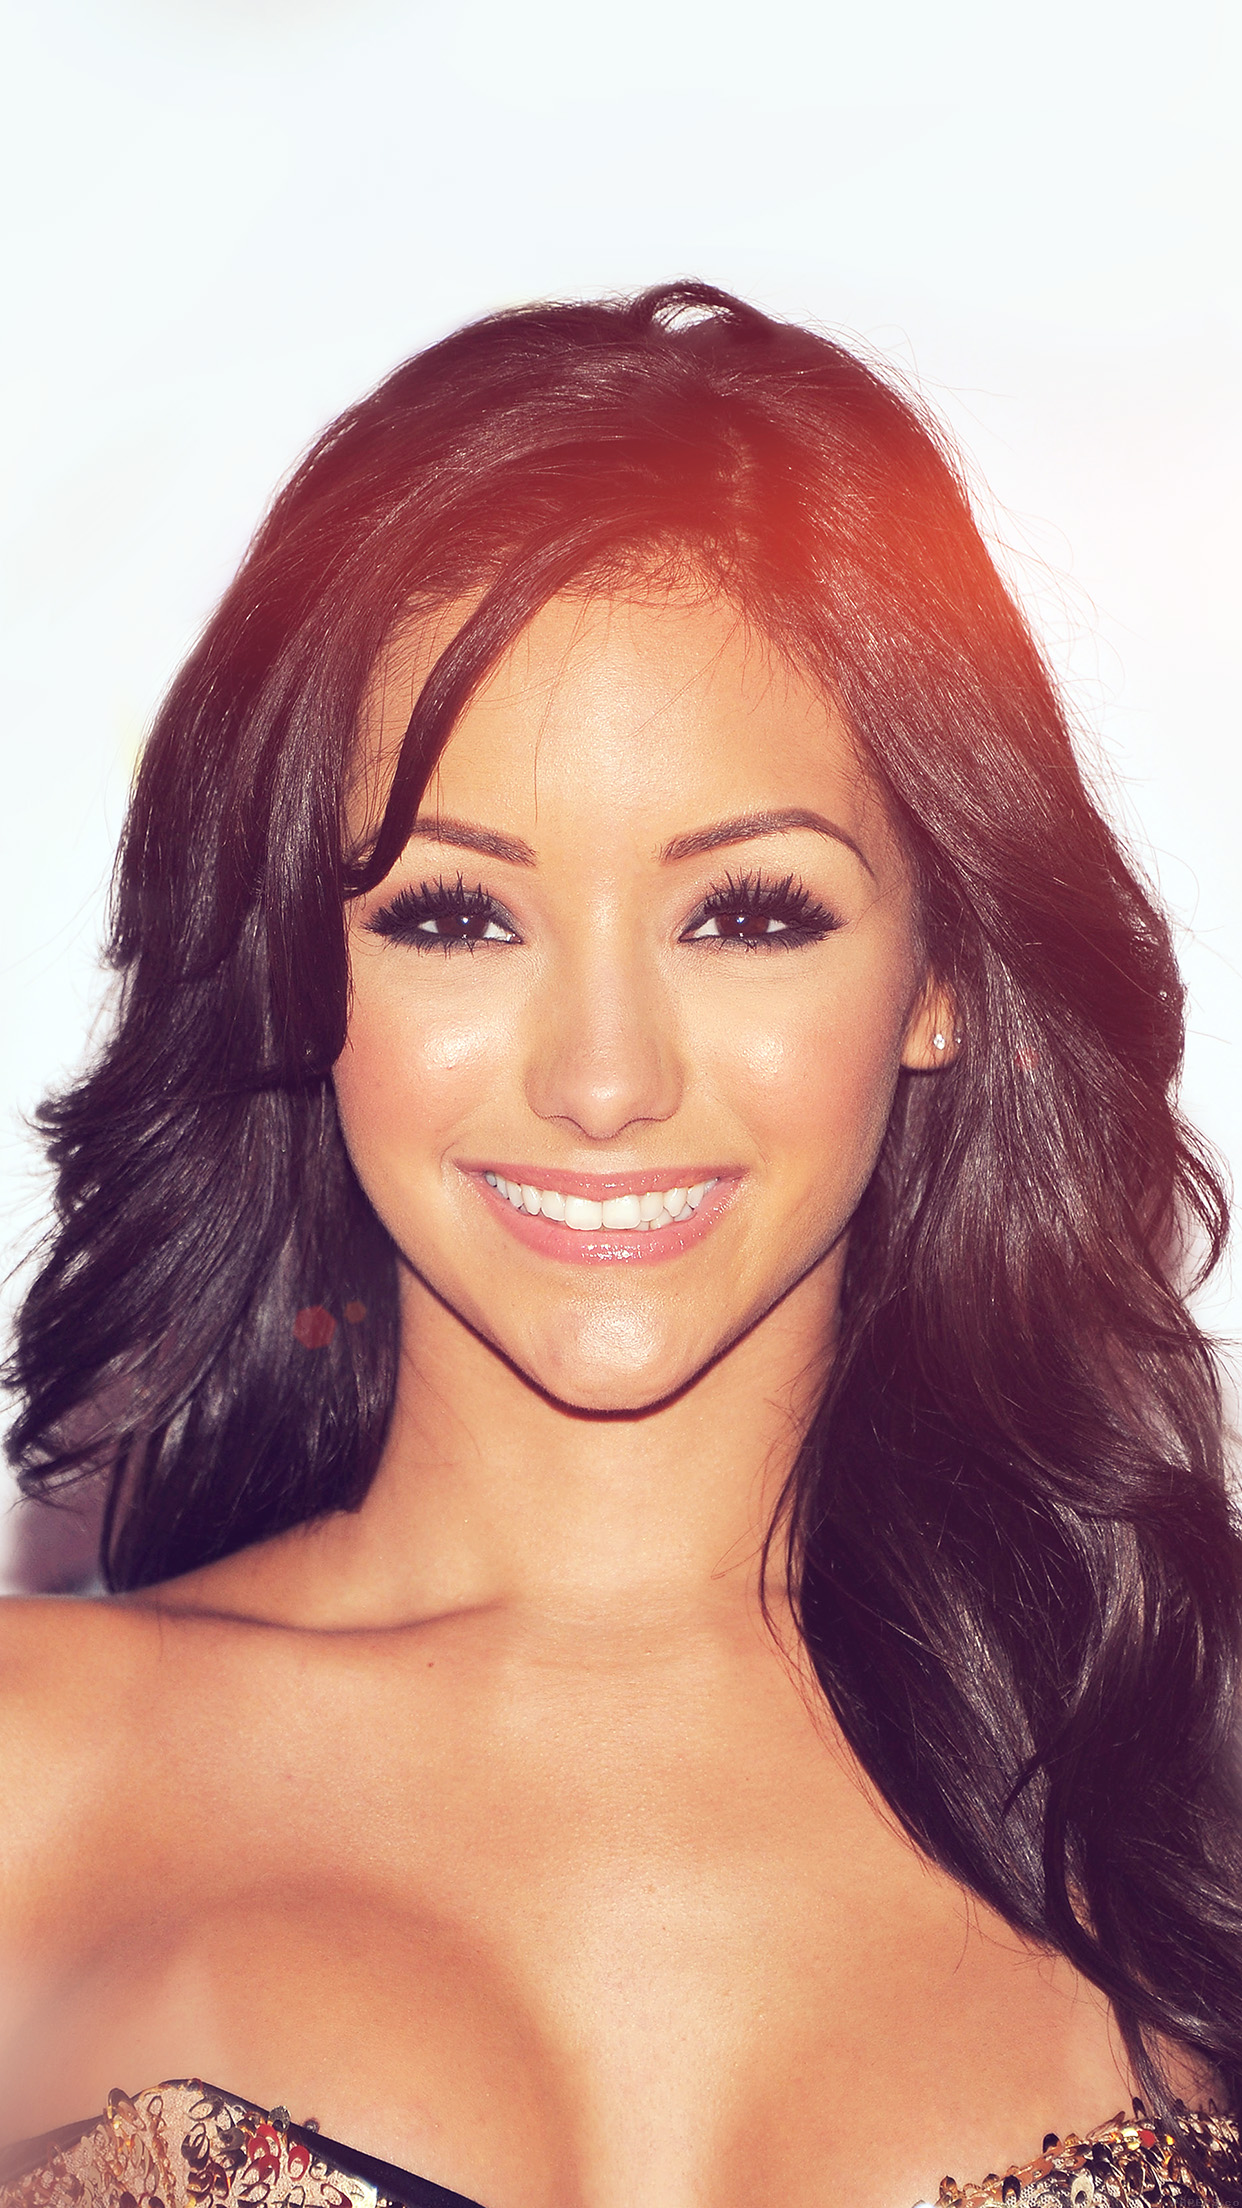 Melanie Iglesias Sexy Face Model Sexy Flare Android wallpaper